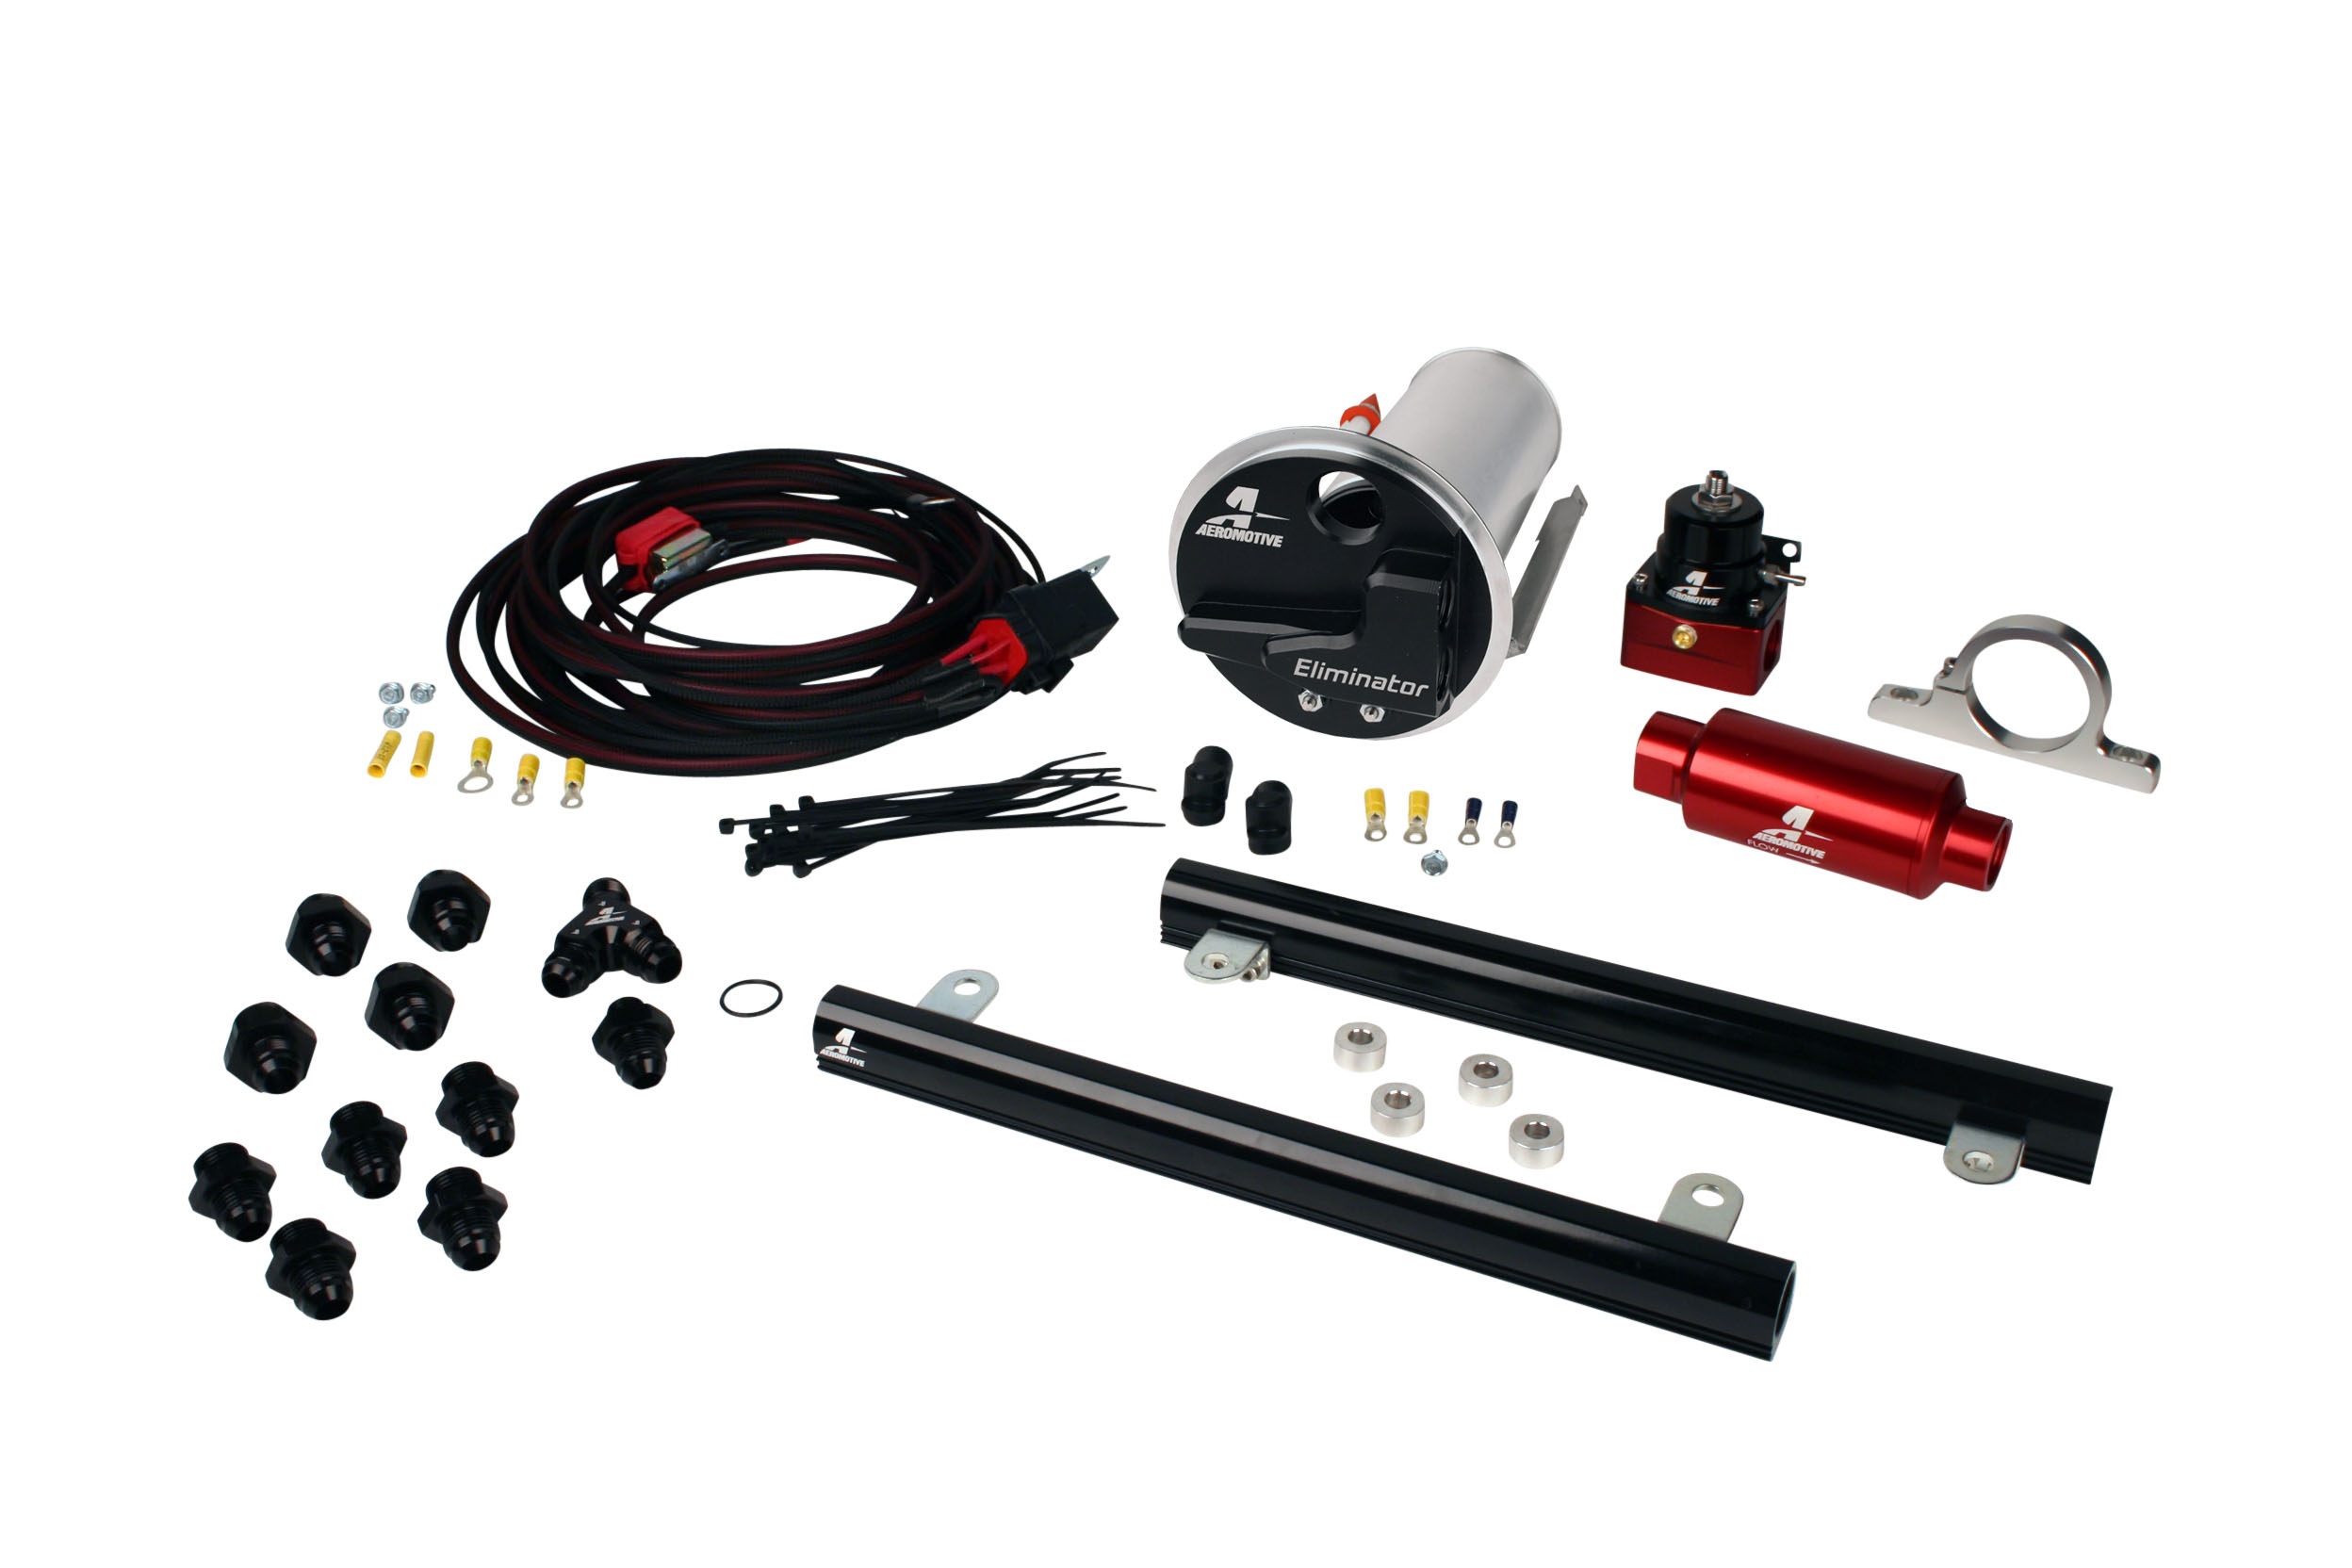 2005-2009 Ford Mustang GT Aeromotive Stealth Eliminator Race Fuel System w/5.4L Cobra Jet Fuel Rails